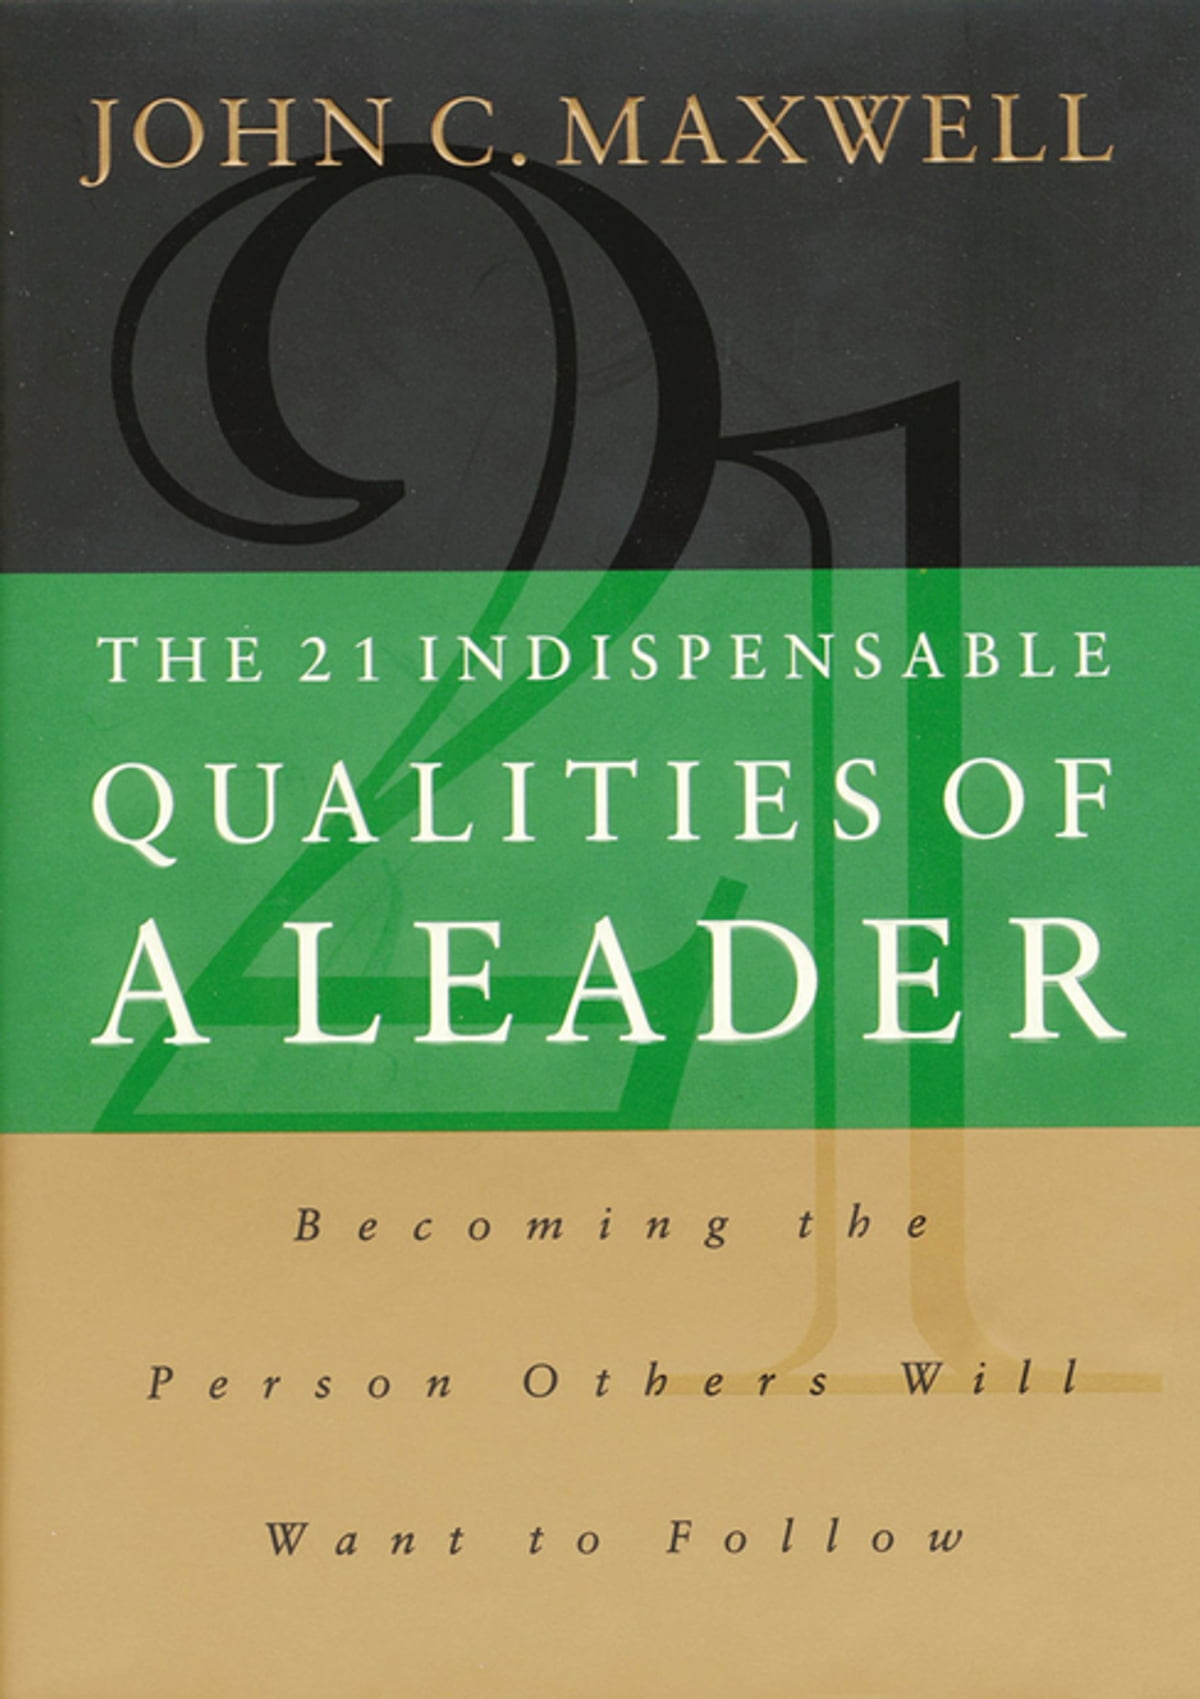 Developing the leader within you 20 ebook by john c maxwell the 21 indispensable qualities of a leader becoming the person others will want to follow fandeluxe Image collections